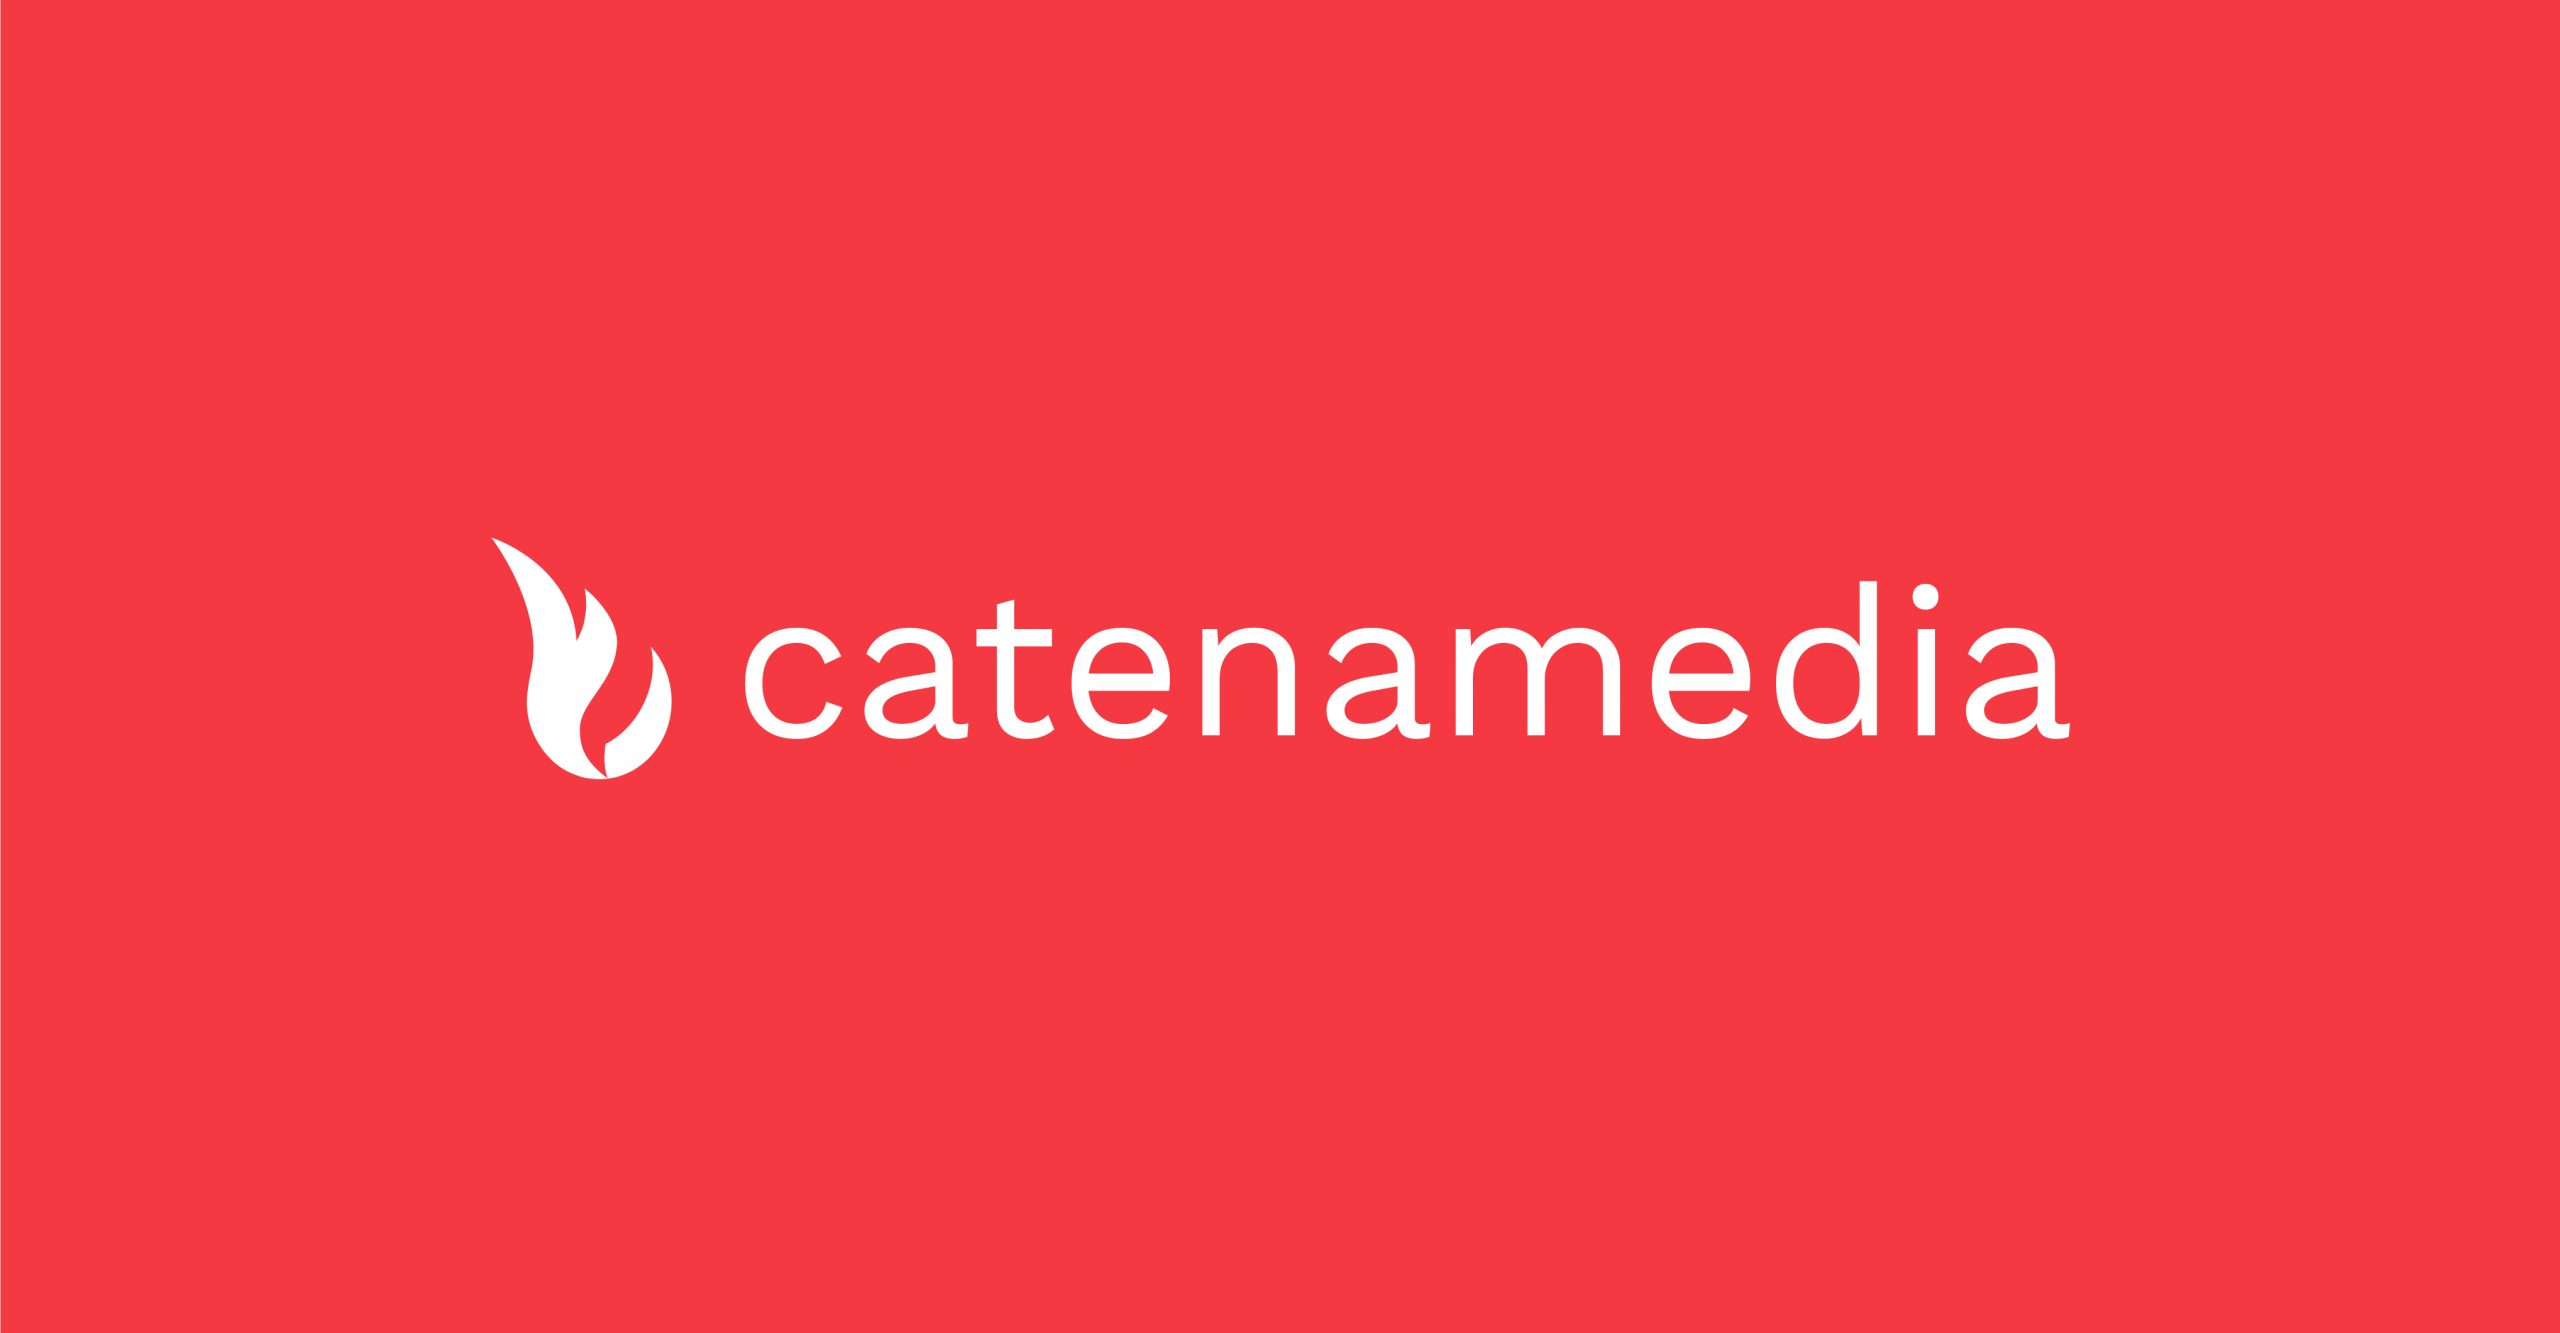 Catena Media Outlines Expansion Plans After Q3 Release